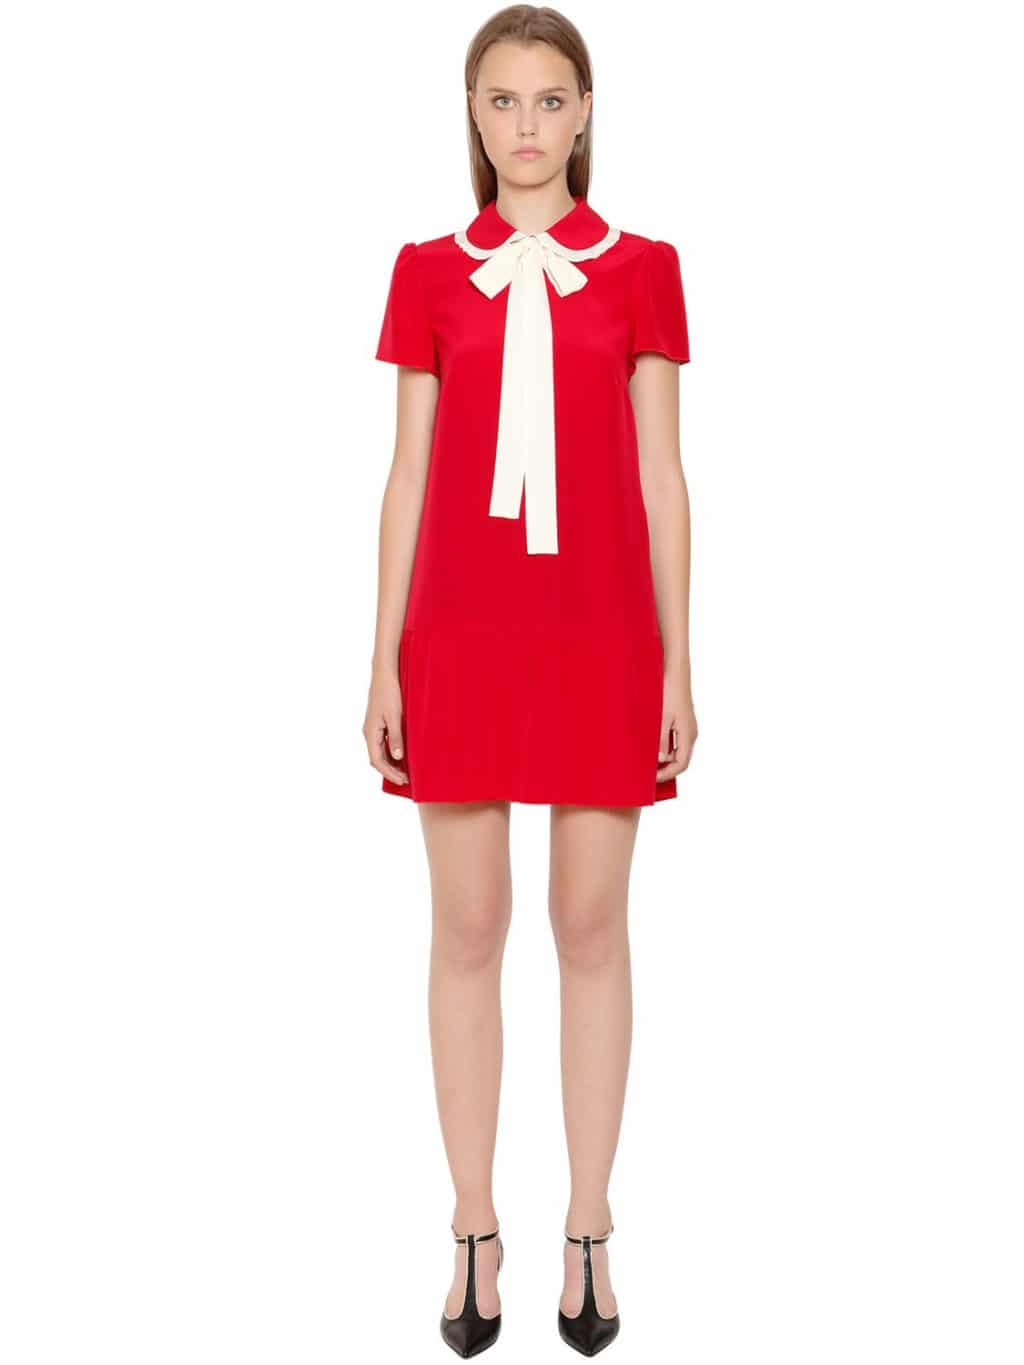 Red Dress With Bow Dresses For Woman